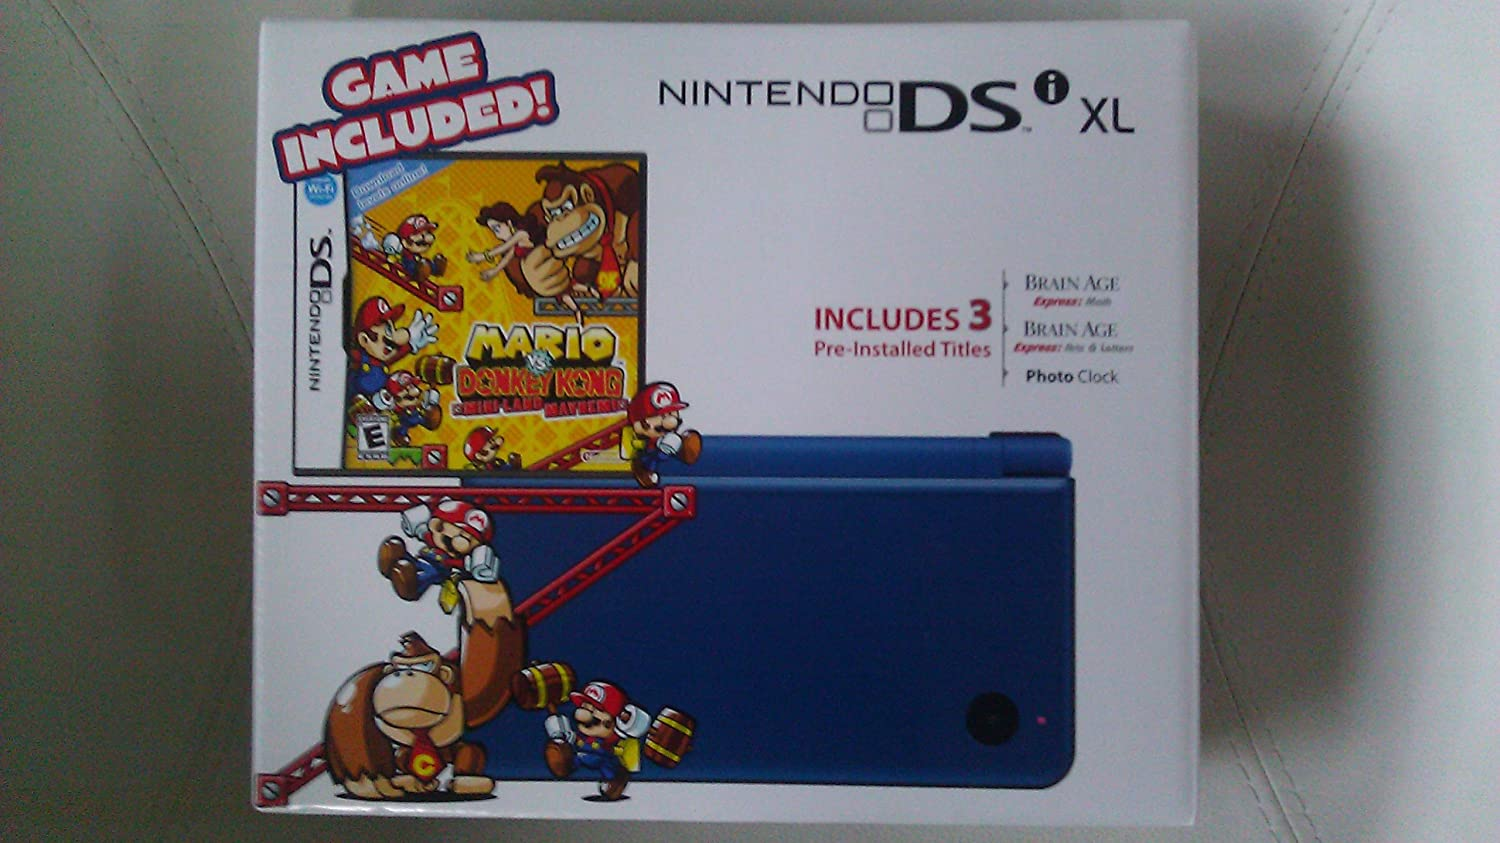 Nintendo DSi XL - Midnight Blue Bundle with Mario vs Donkey Kong Mini-Land Mayhem чулки seven til midnight большого размера с кружевной резинкой xl телесный